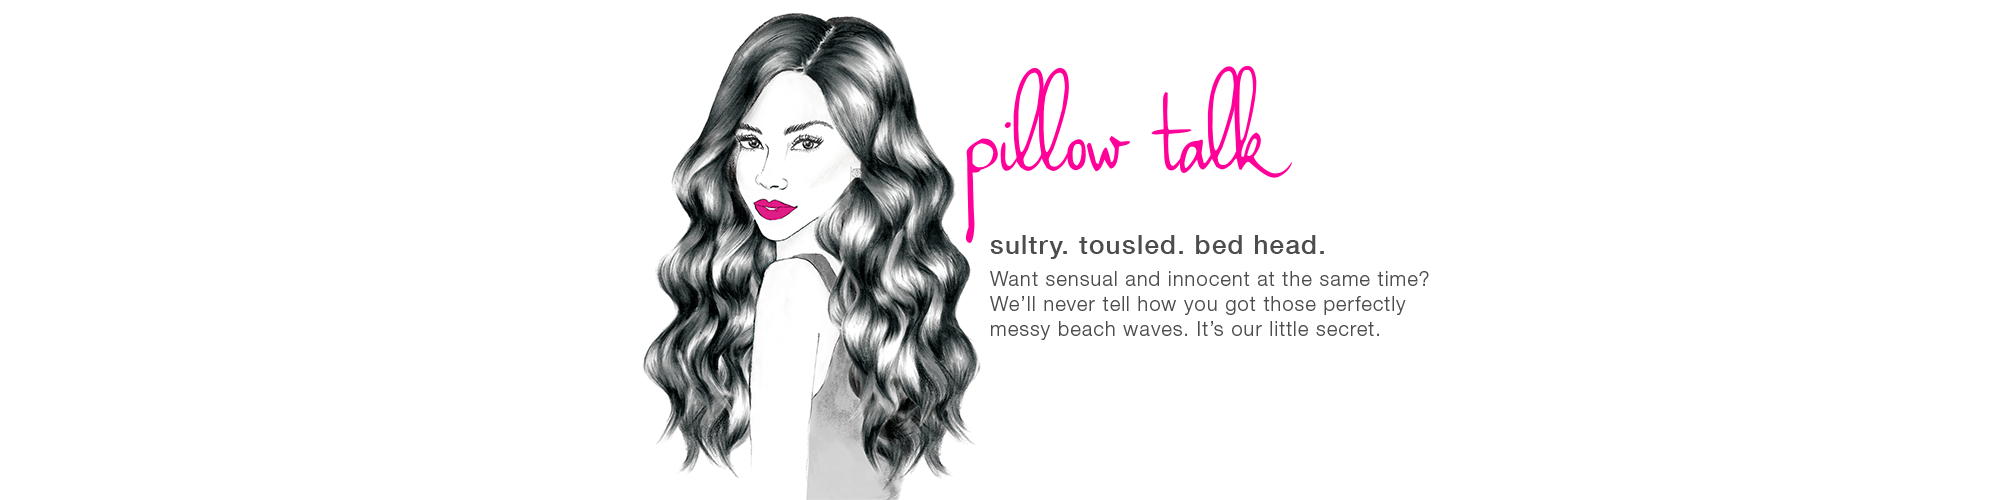 blo services - pillow talk hair style